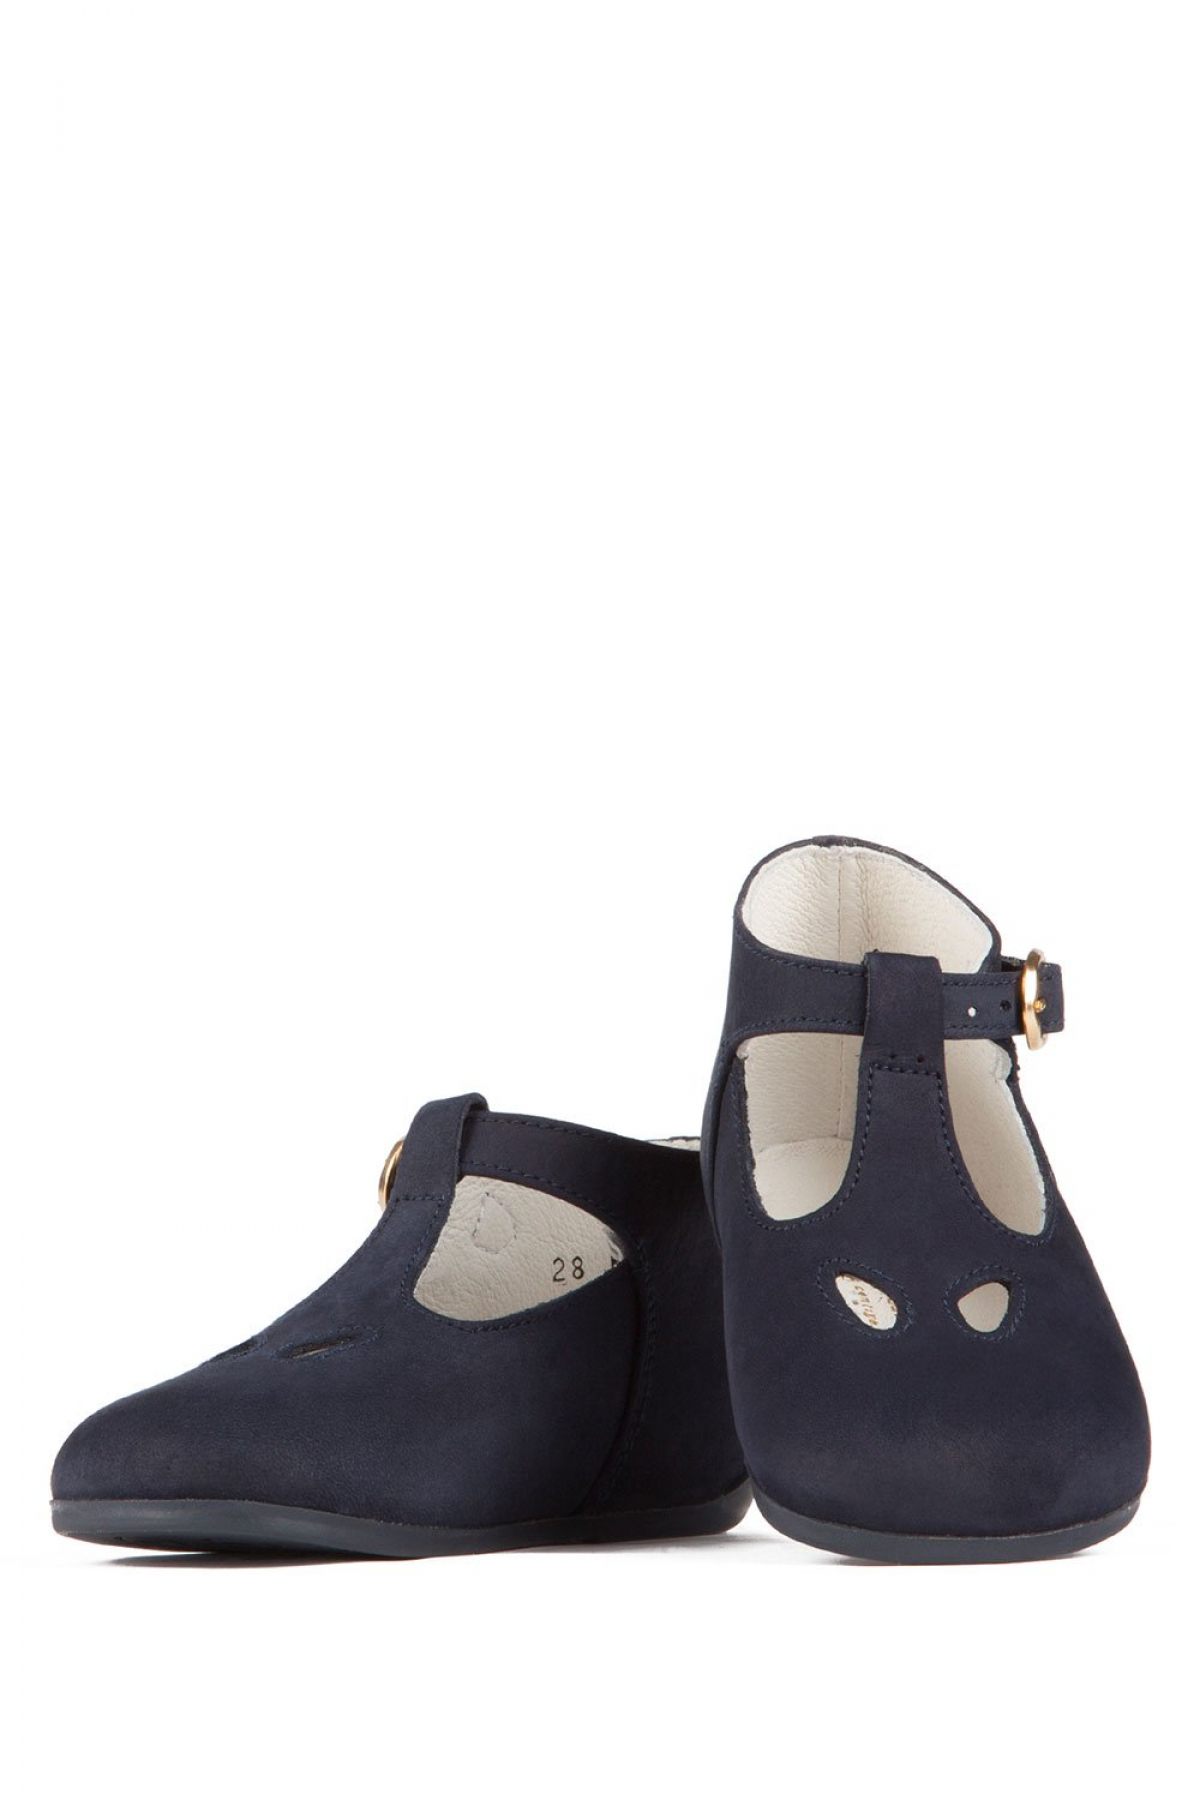 28 Chiquitin First Step Kids Shoes 17-22 Blue